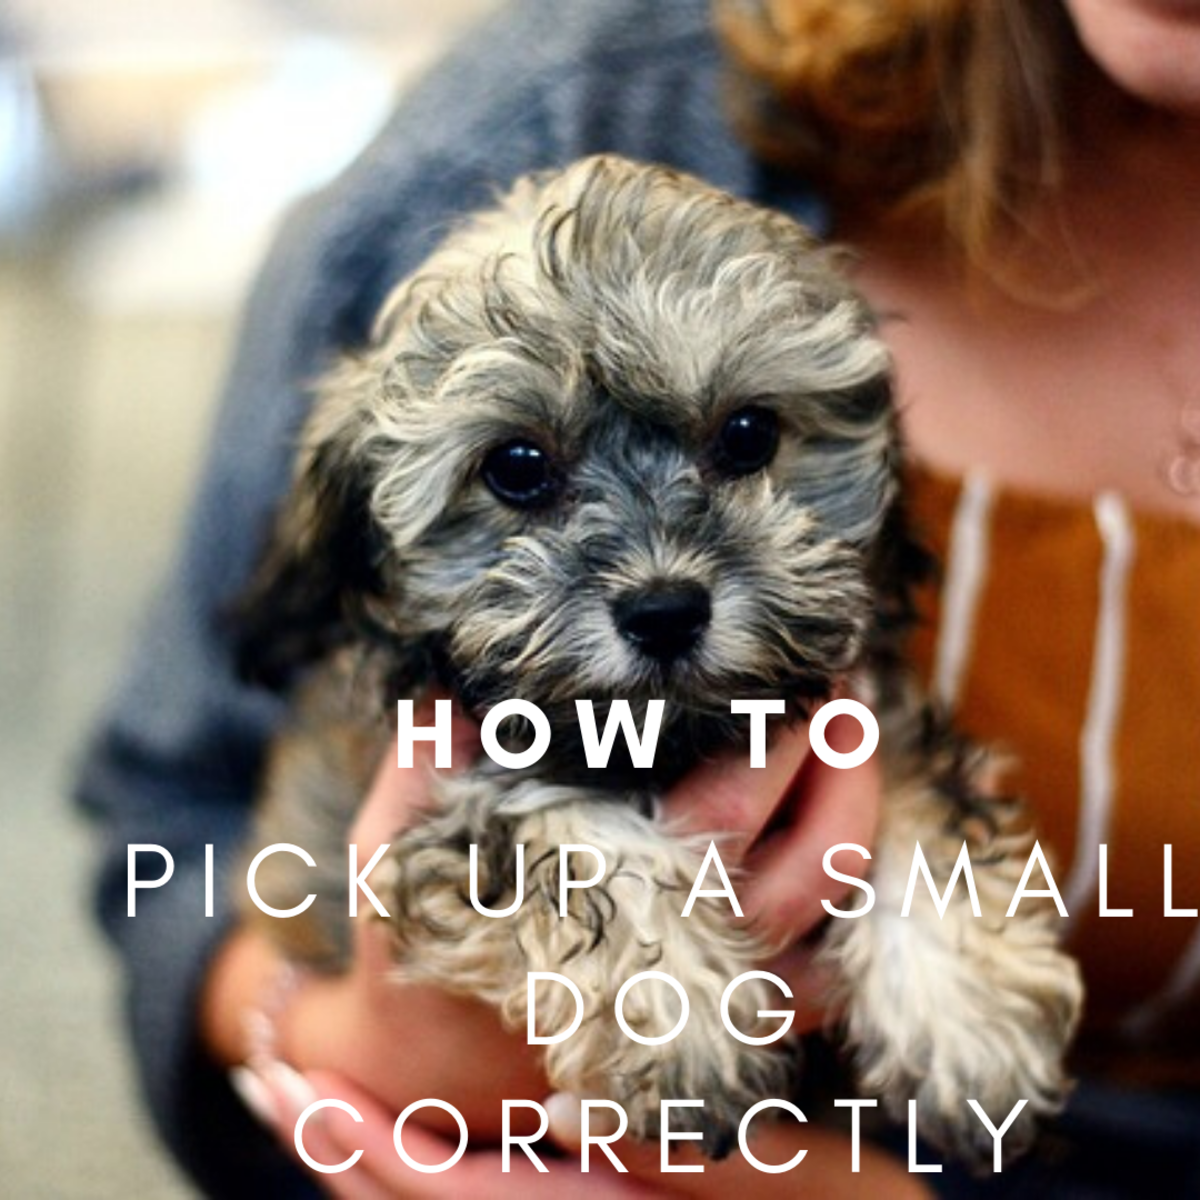 How to Pick up and Hold a Small Dog or Puppy Correctly